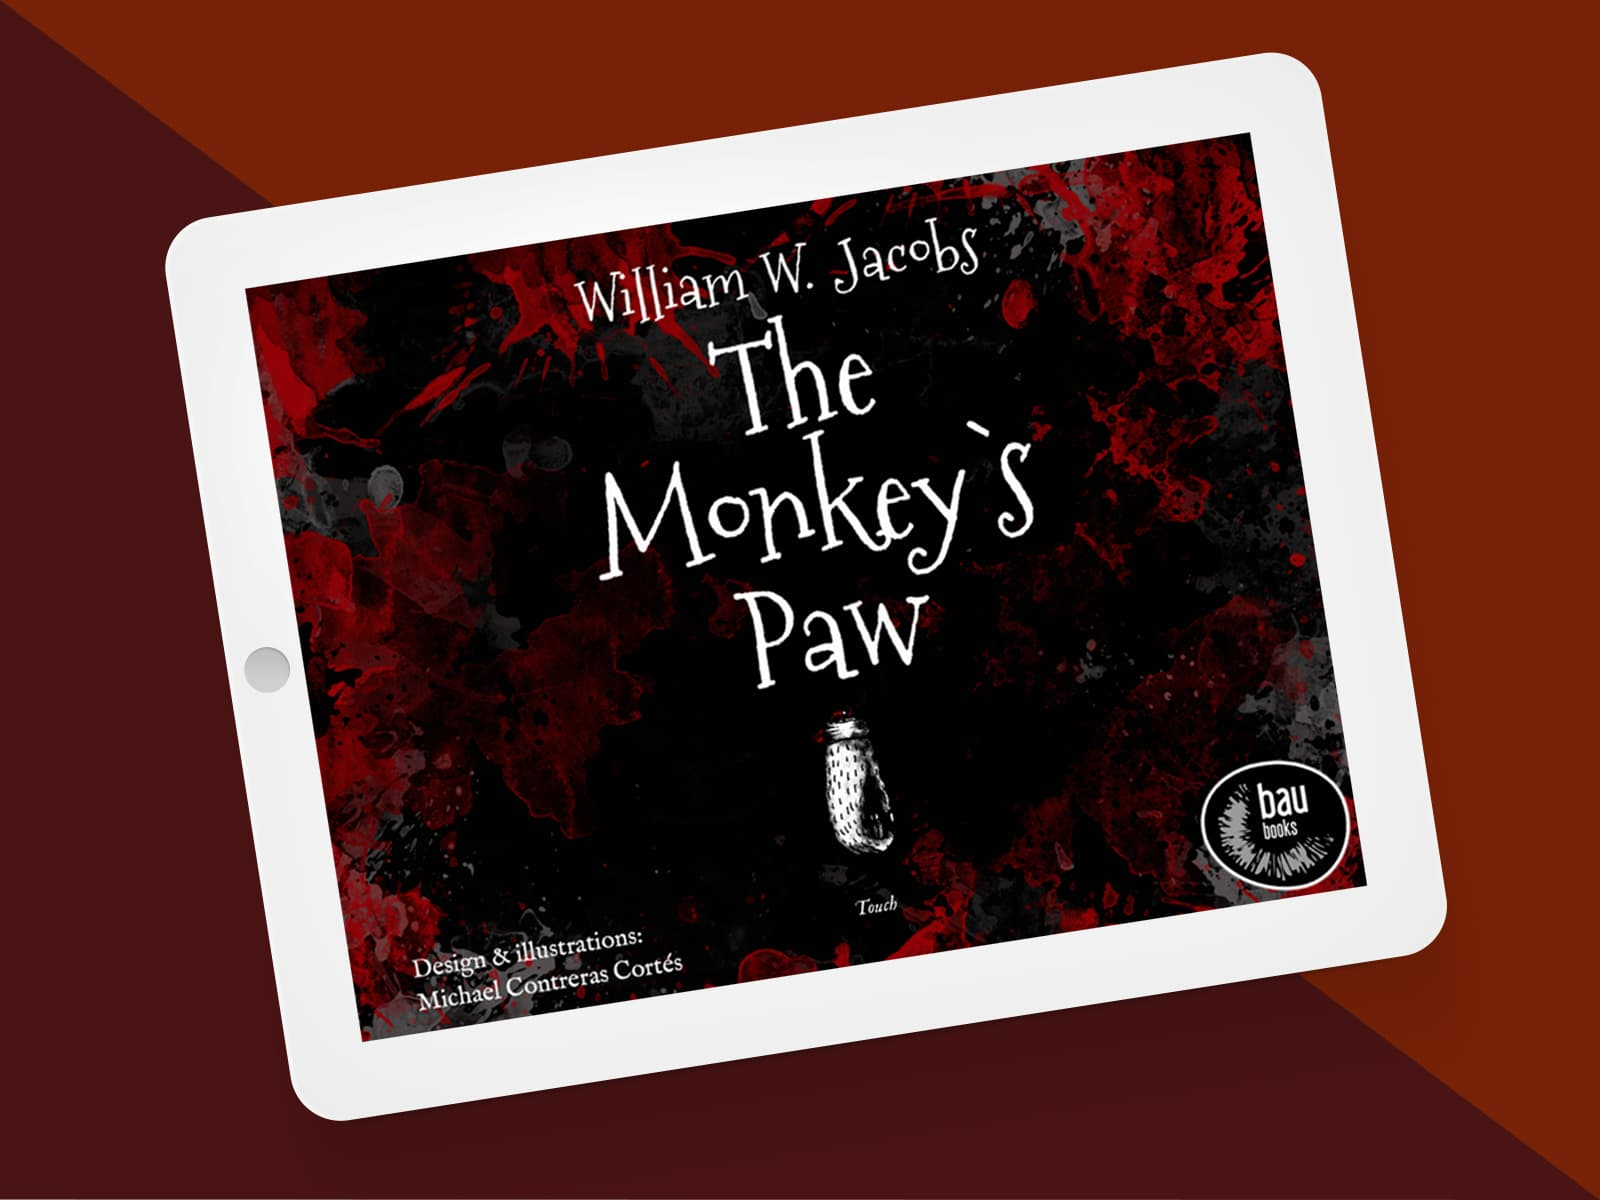 the monkeys paw - Portafolio